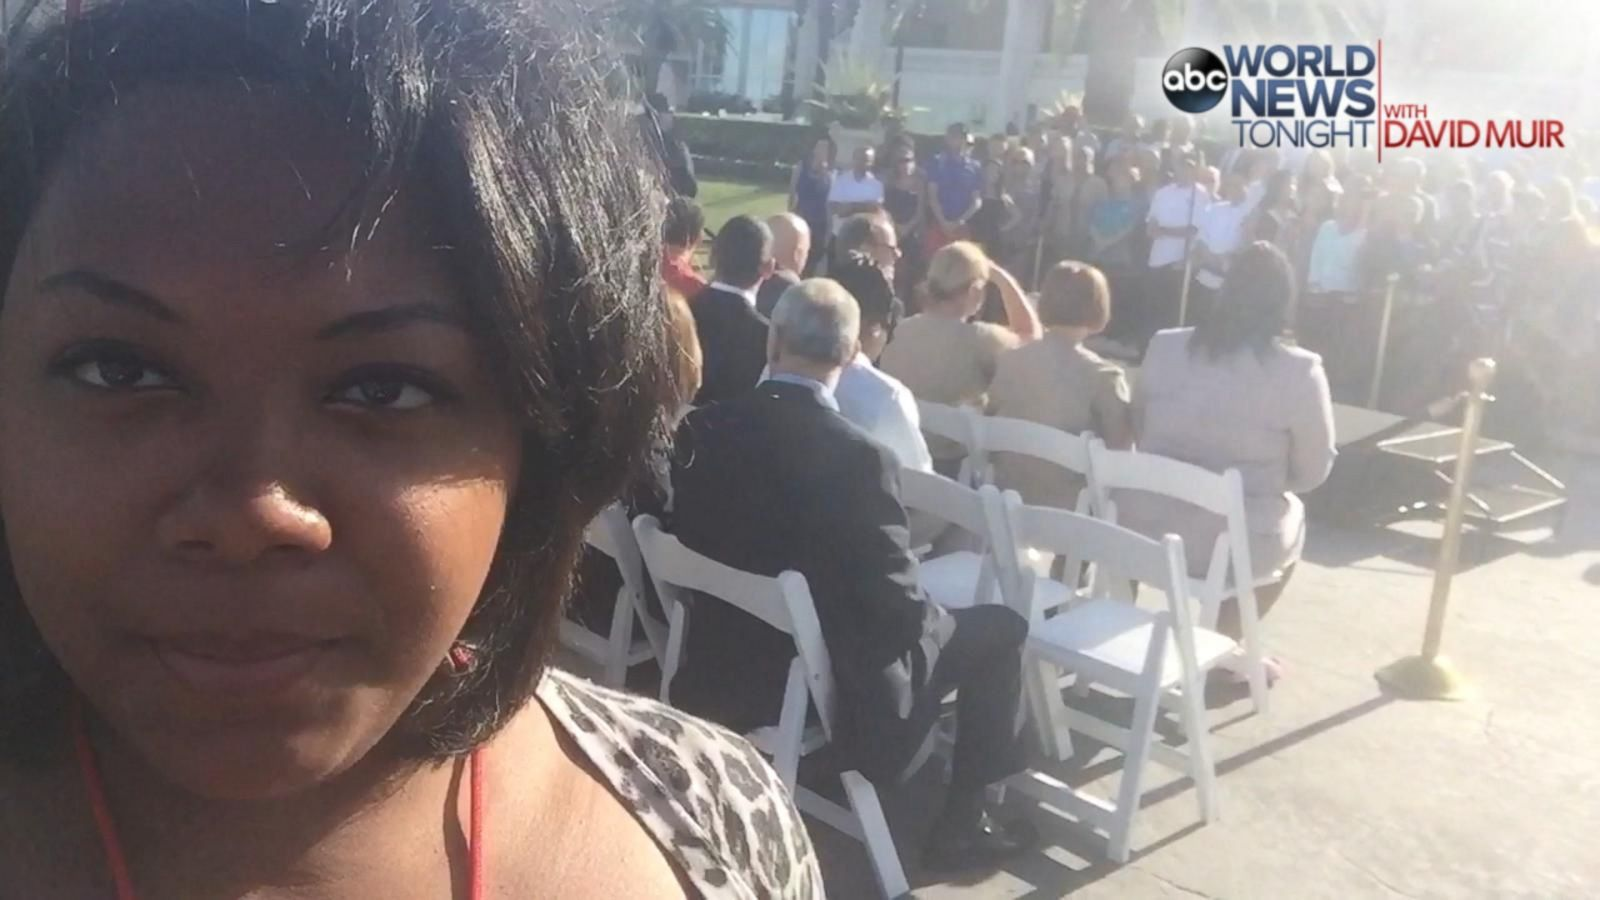 VIDEO: 2016 - 14 Days: Campaign Stop With Trump's Multicultural Employees at Doral Resort in FL